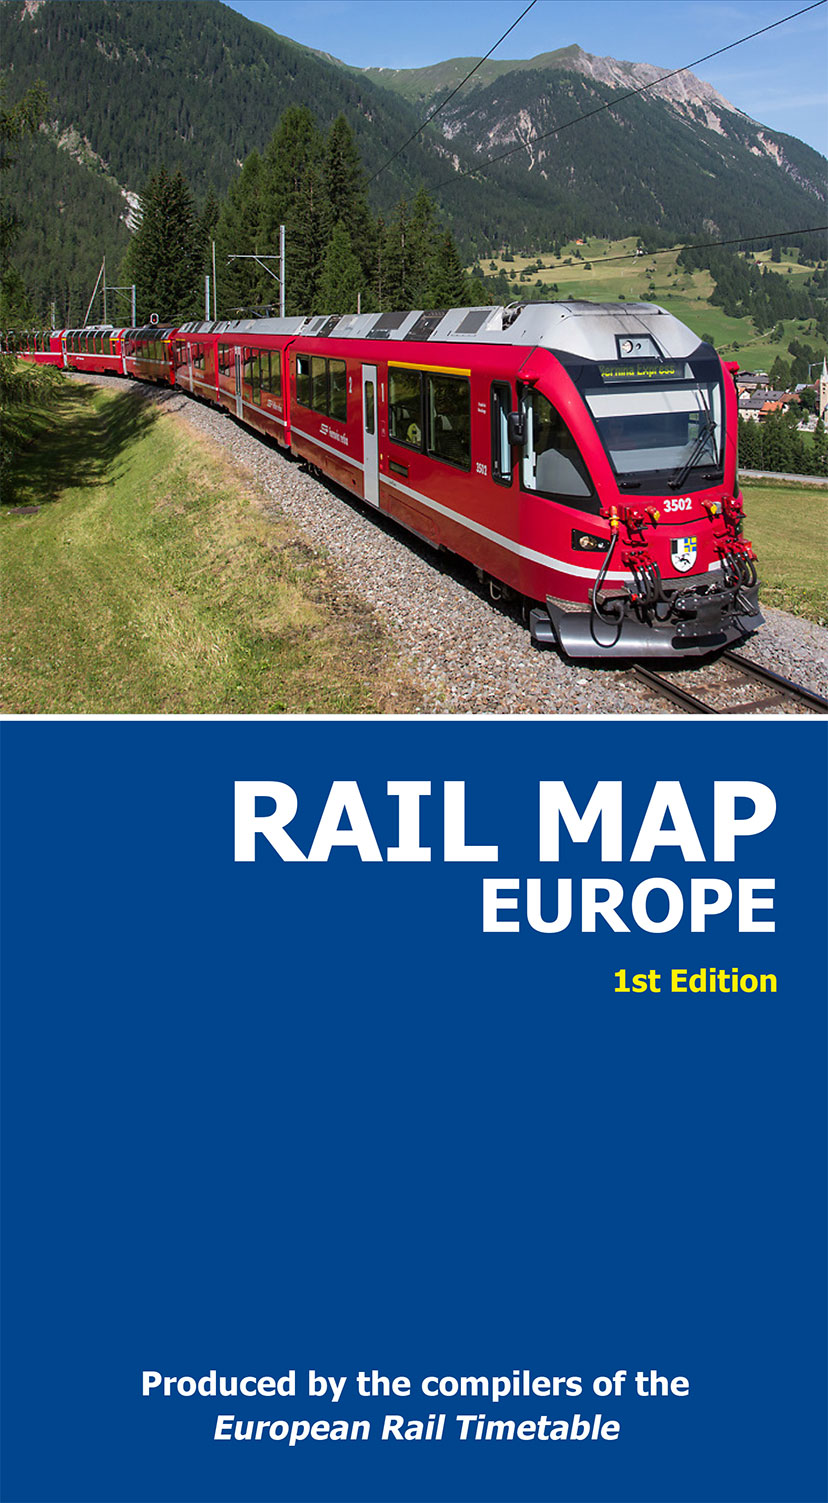 1st edition of the Rail Map Europe, published in December 2015